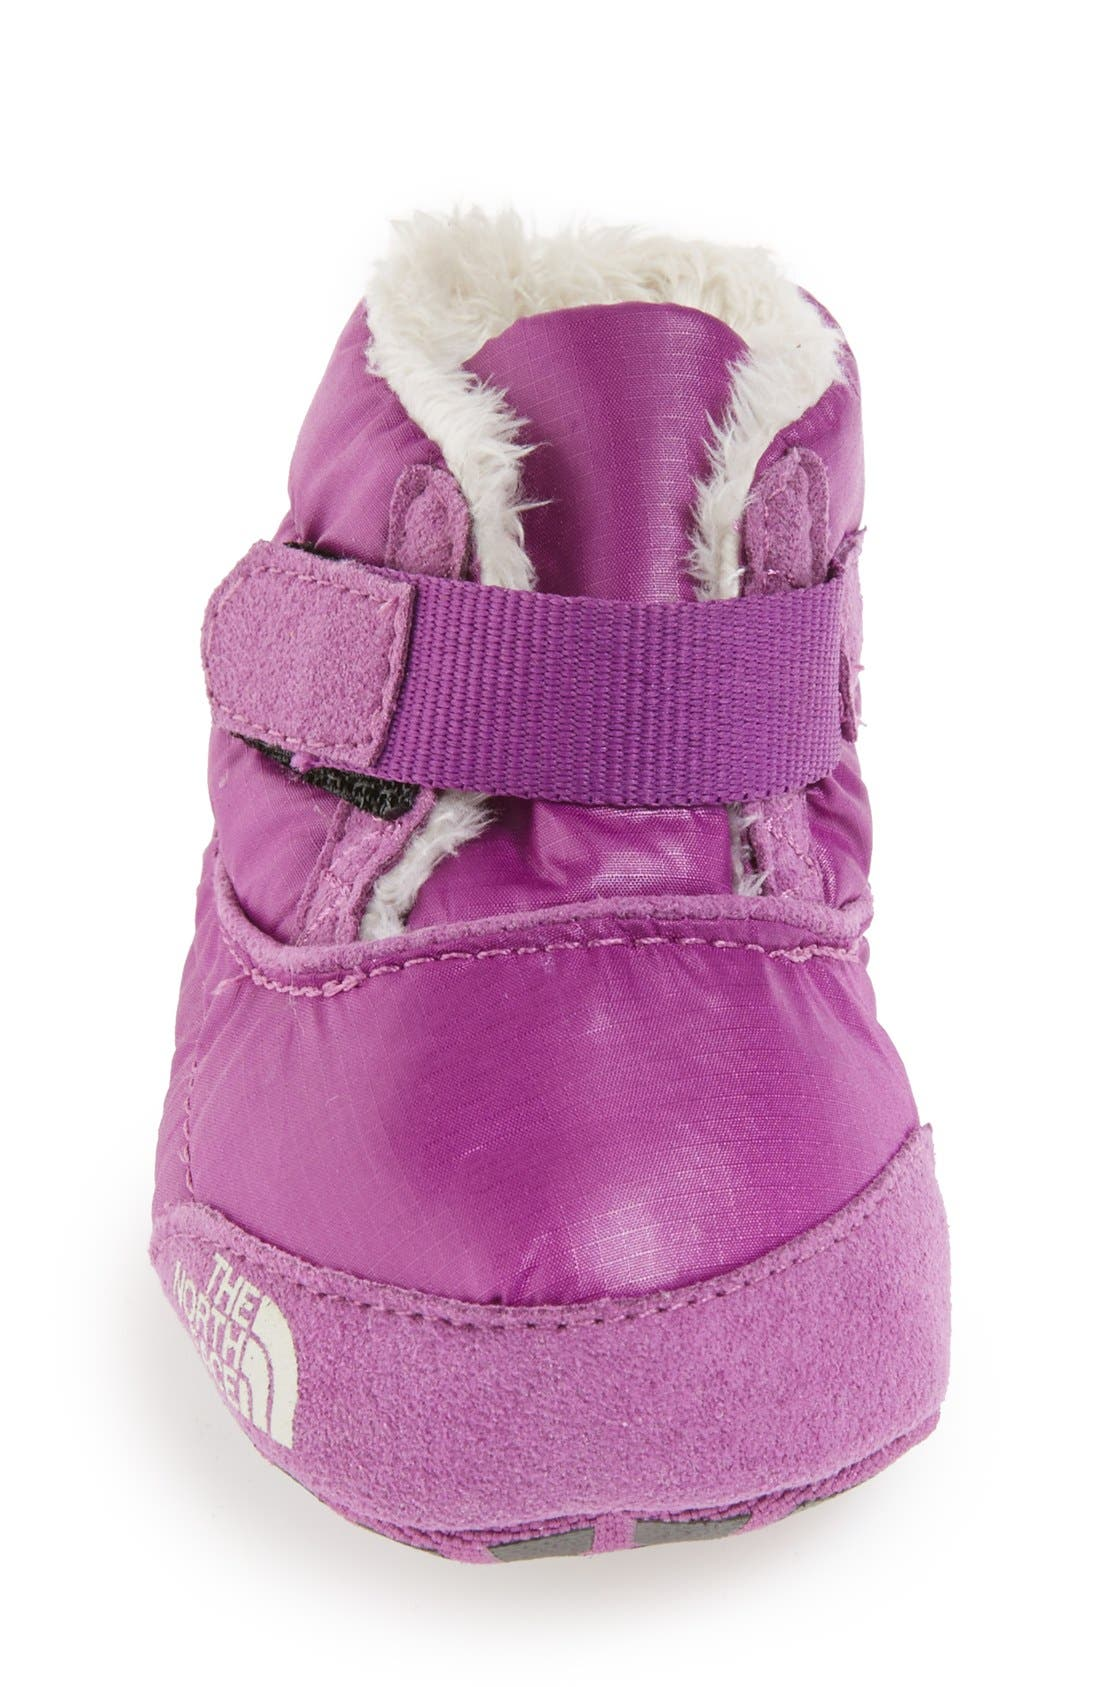 'Asher' Bootie,                             Alternate thumbnail 2, color,                             500